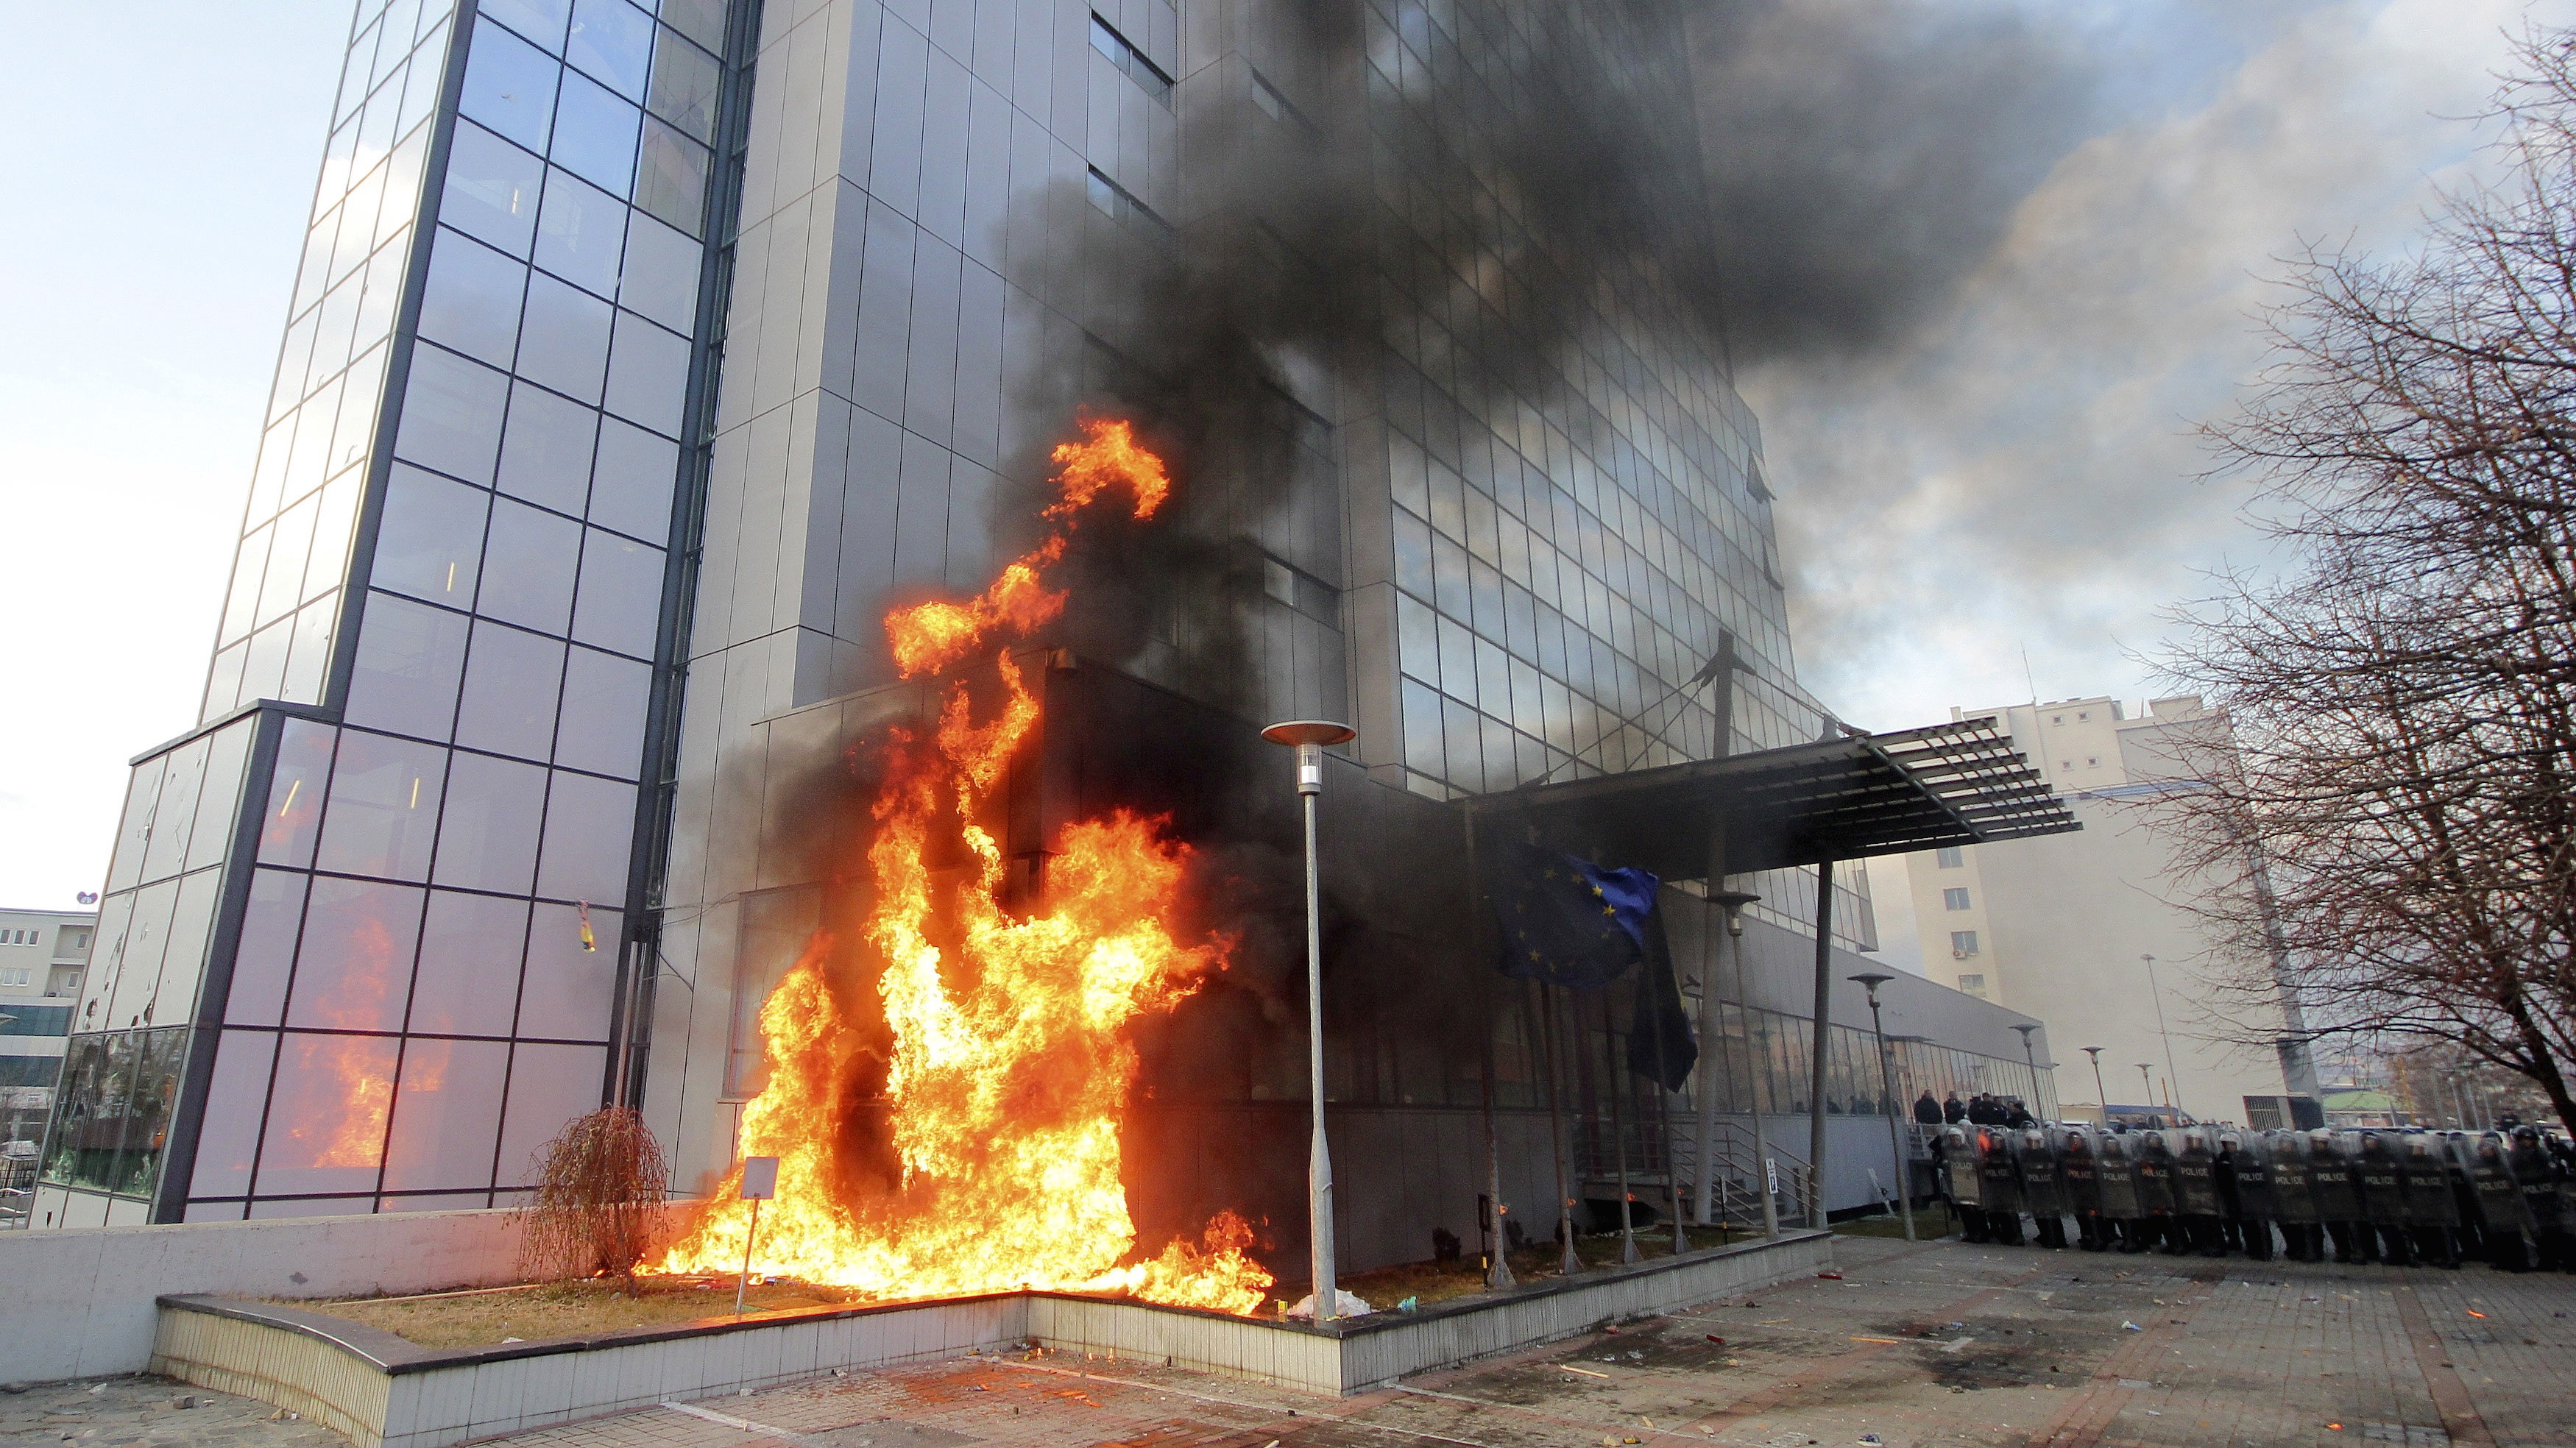 A portion of the national government headquarters in Pristina, Kosovo, burns.